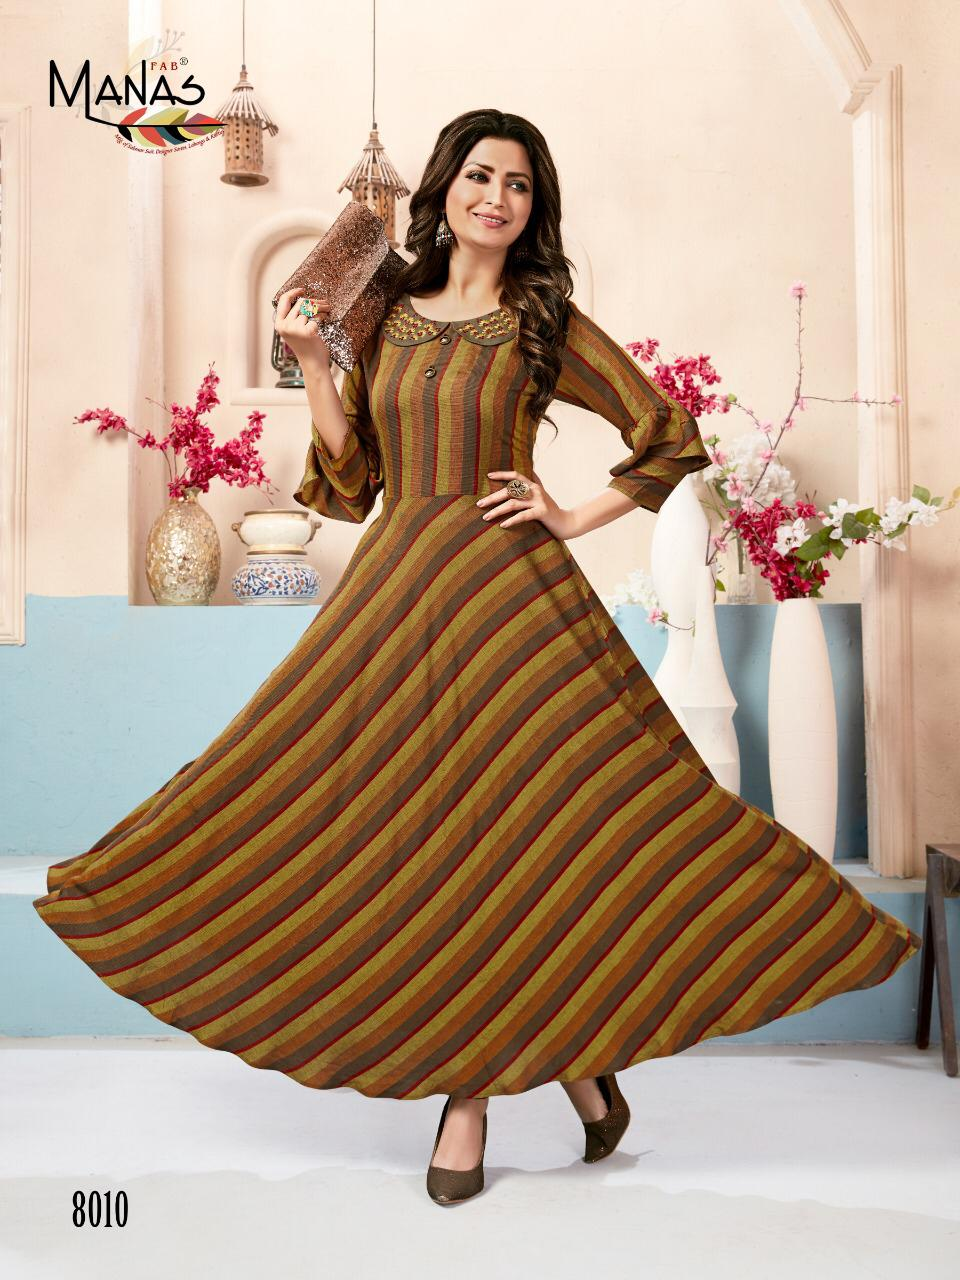 Manas Classic Vol 2 collection 3